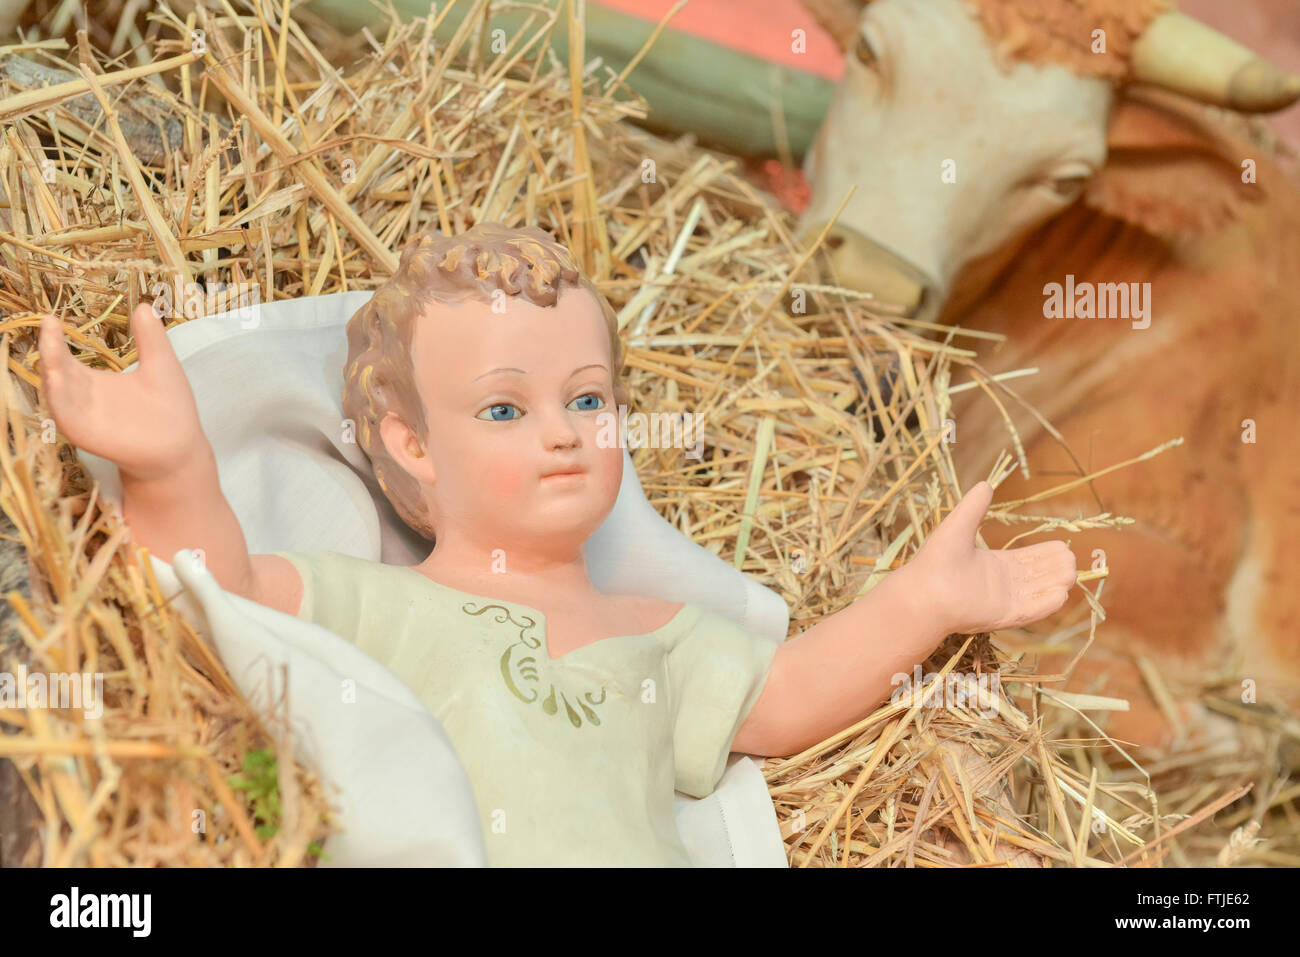 baby jesus manger stock photos u0026 baby jesus manger stock images